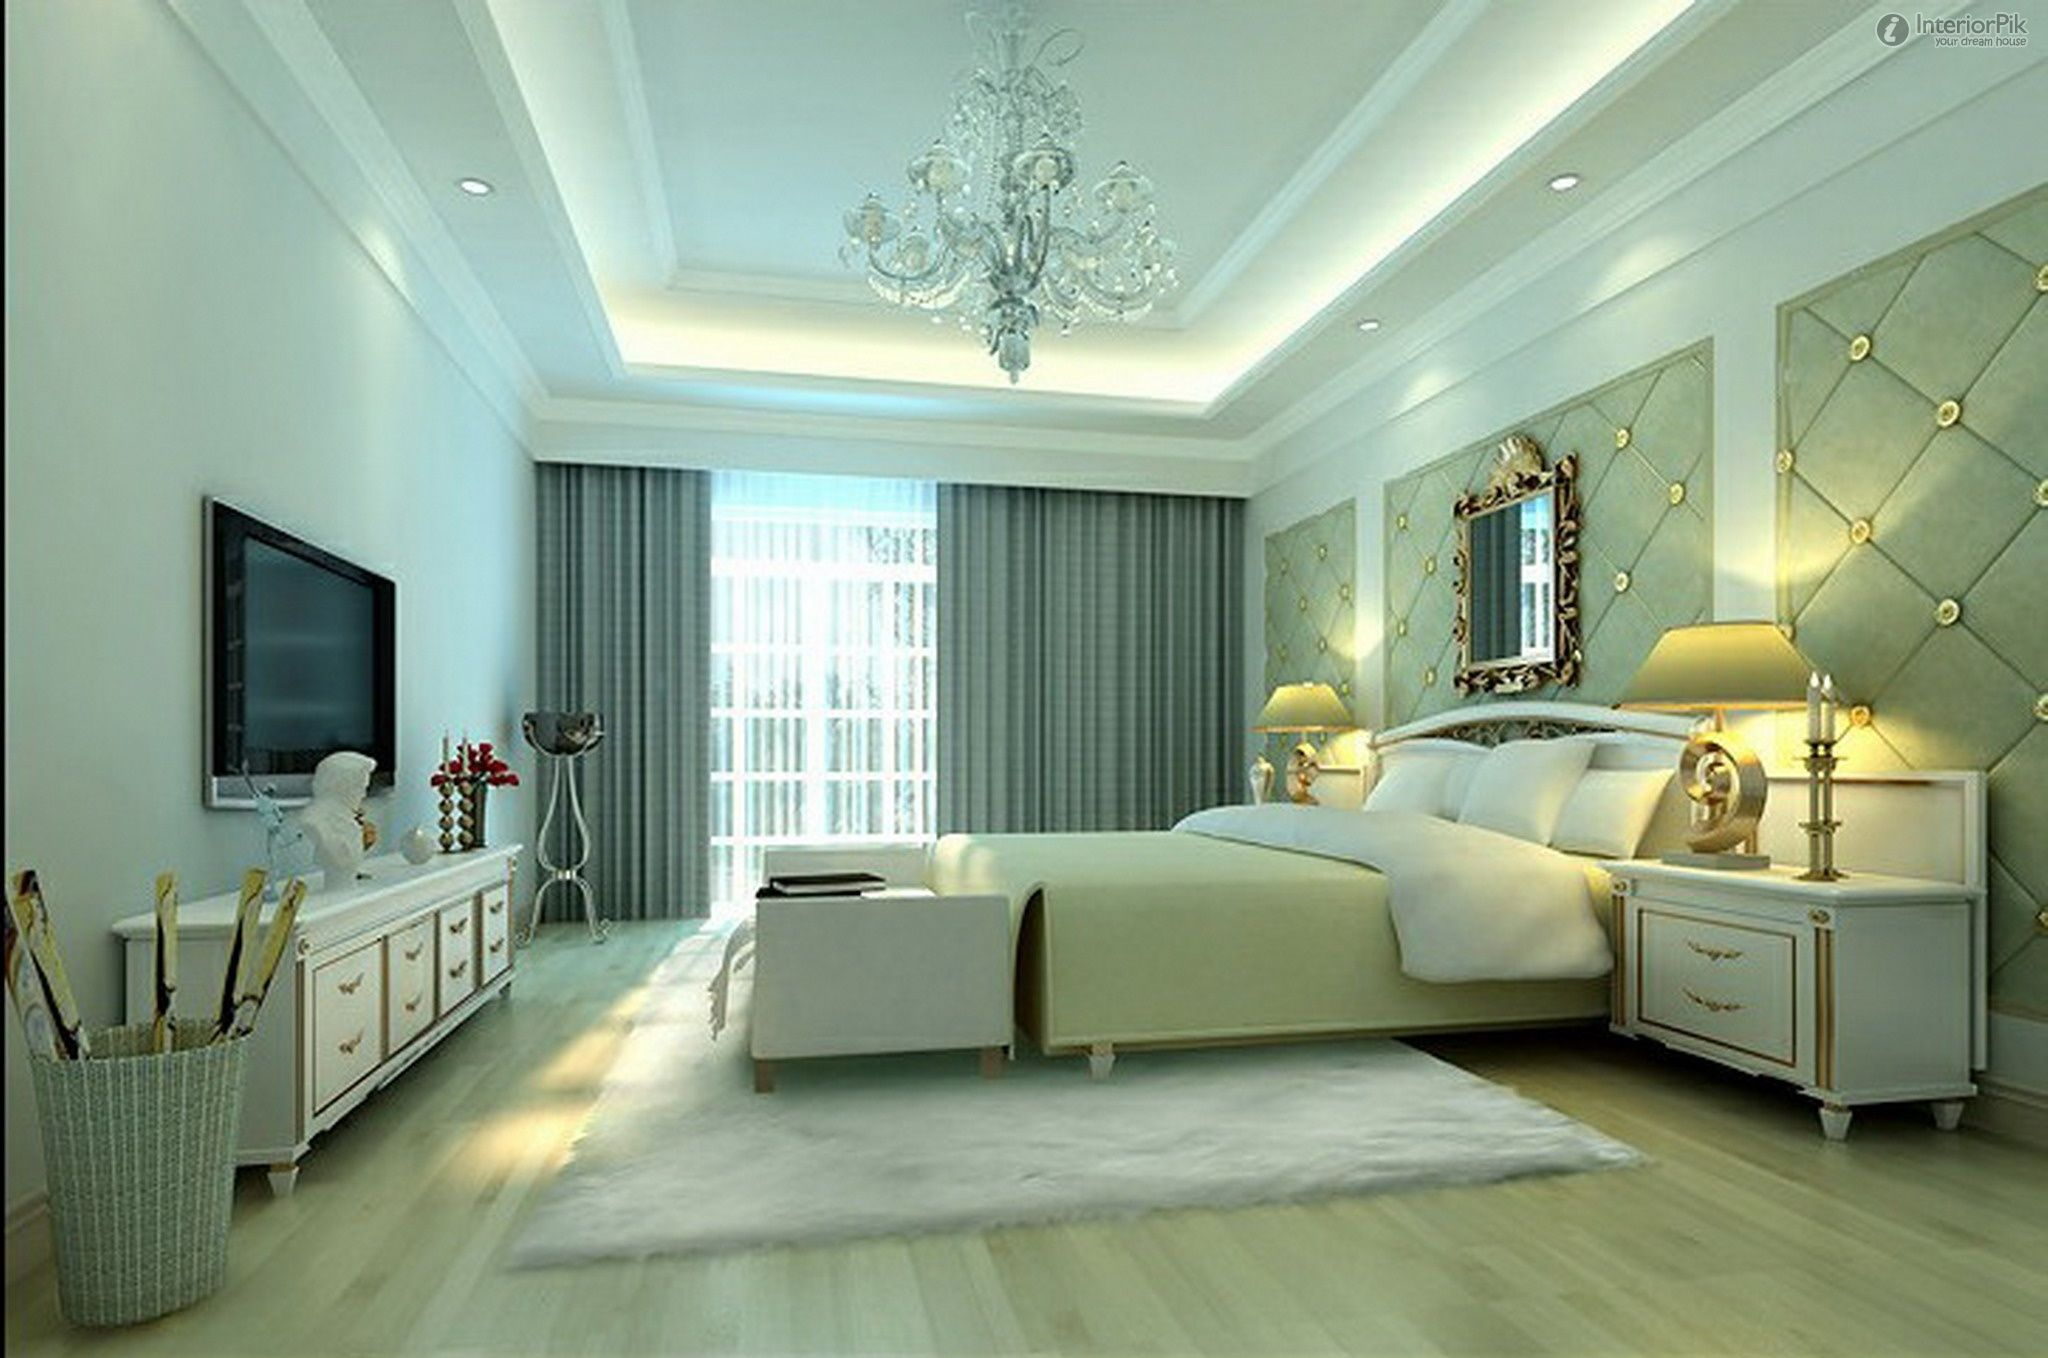 Modern master bedroom ceiling designs - Luxury Modern Ceiling Design For Master Bedroom Examples For Your Creation